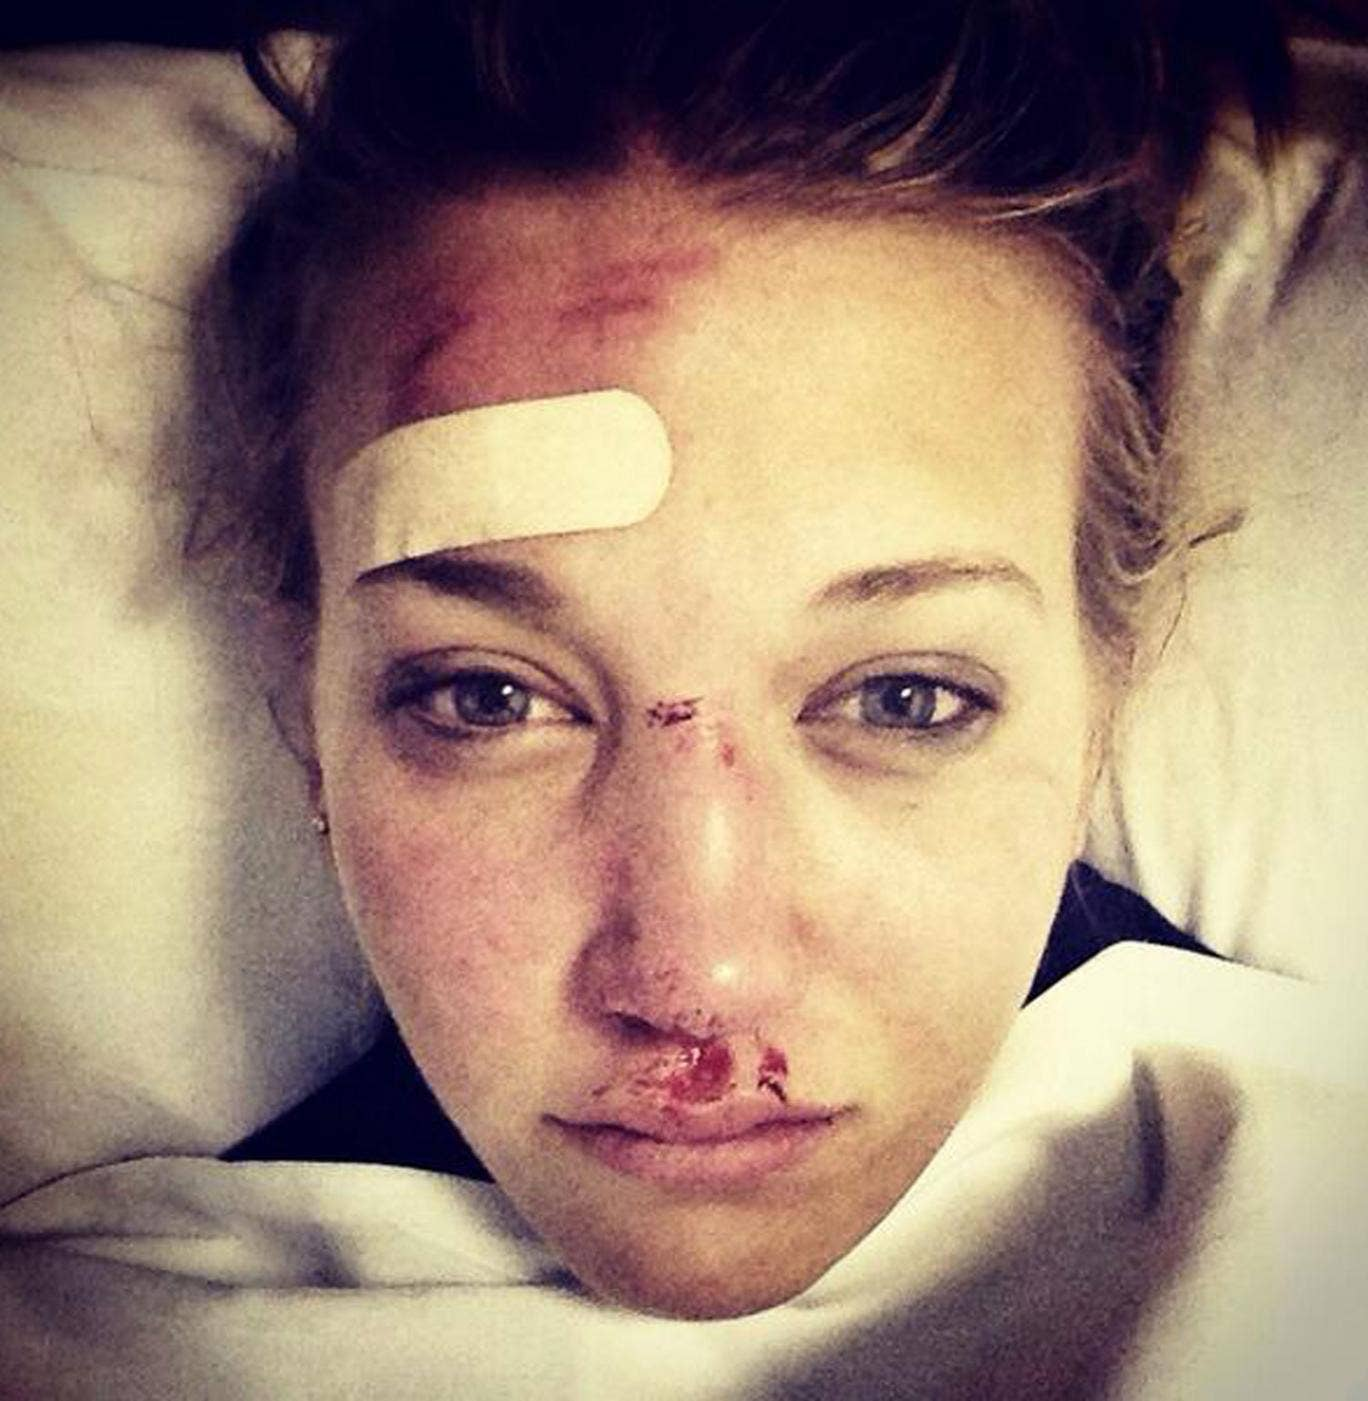 Rowan Cheshire posted this picture on Twitter showing the extent of her injuries from a skiing accident